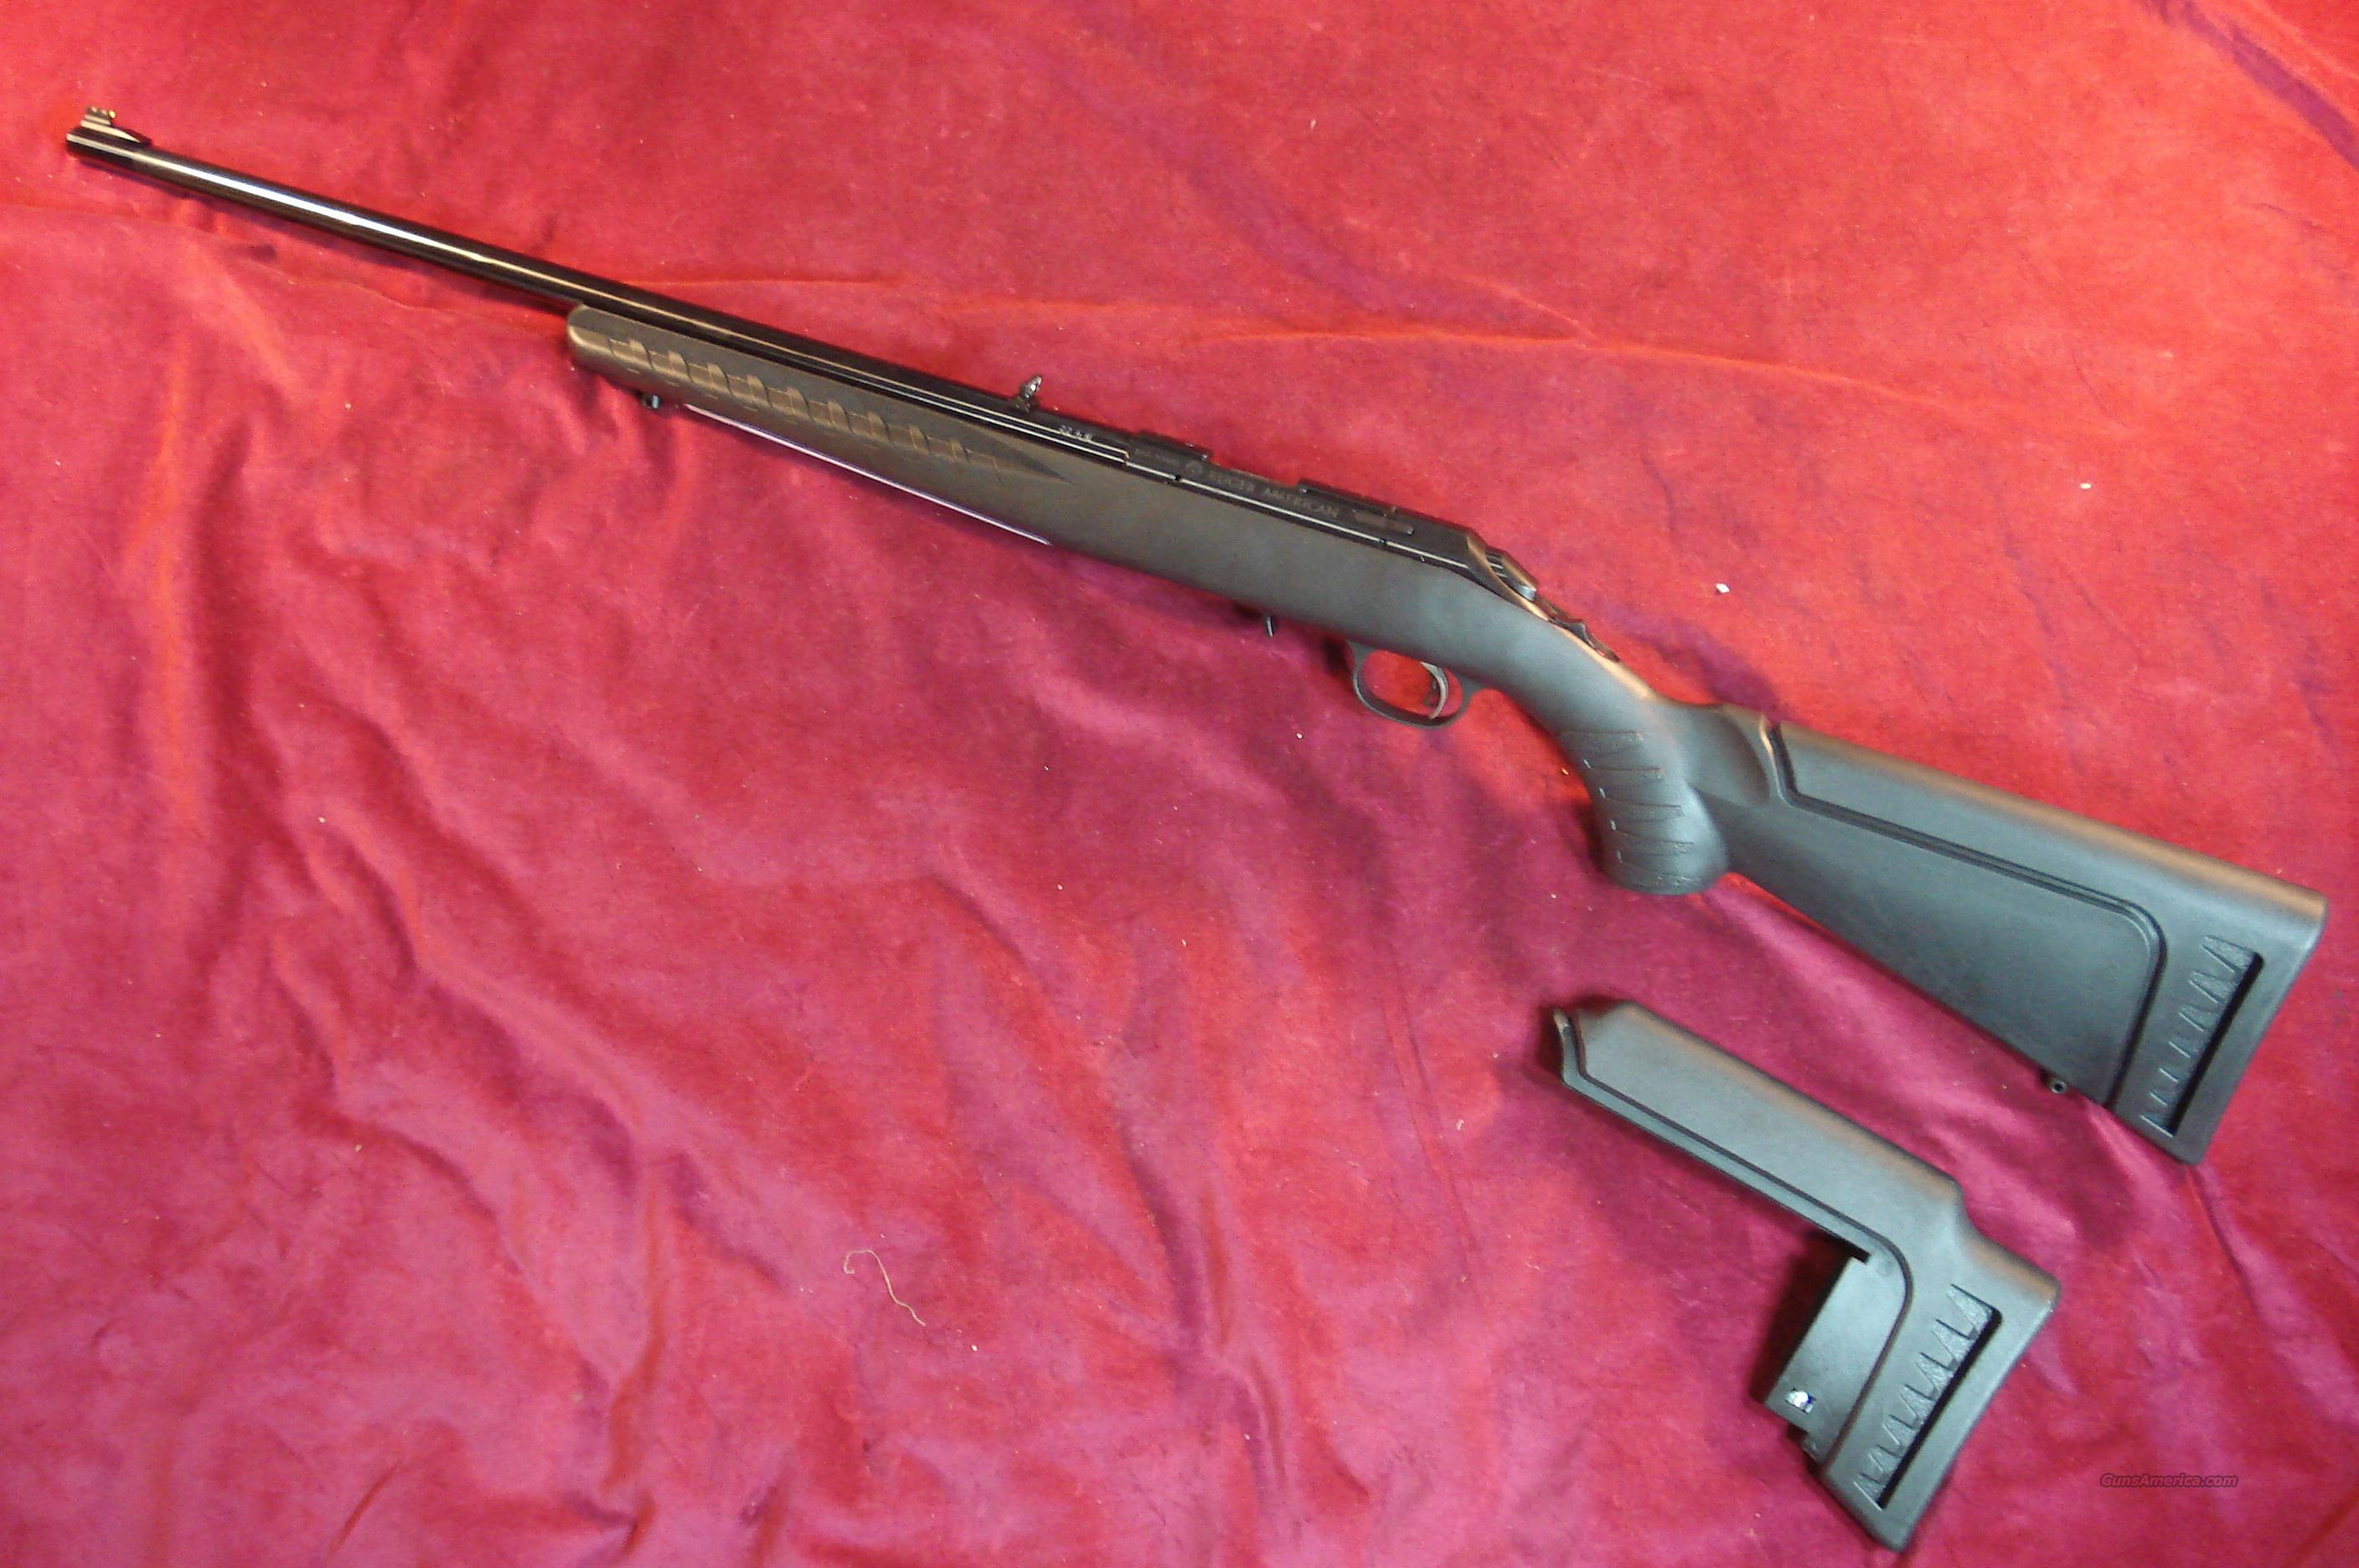 RUGER AMERICAN RIFLE 22LR CAL NEW  Guns > Rifles > Ruger Rifles > American